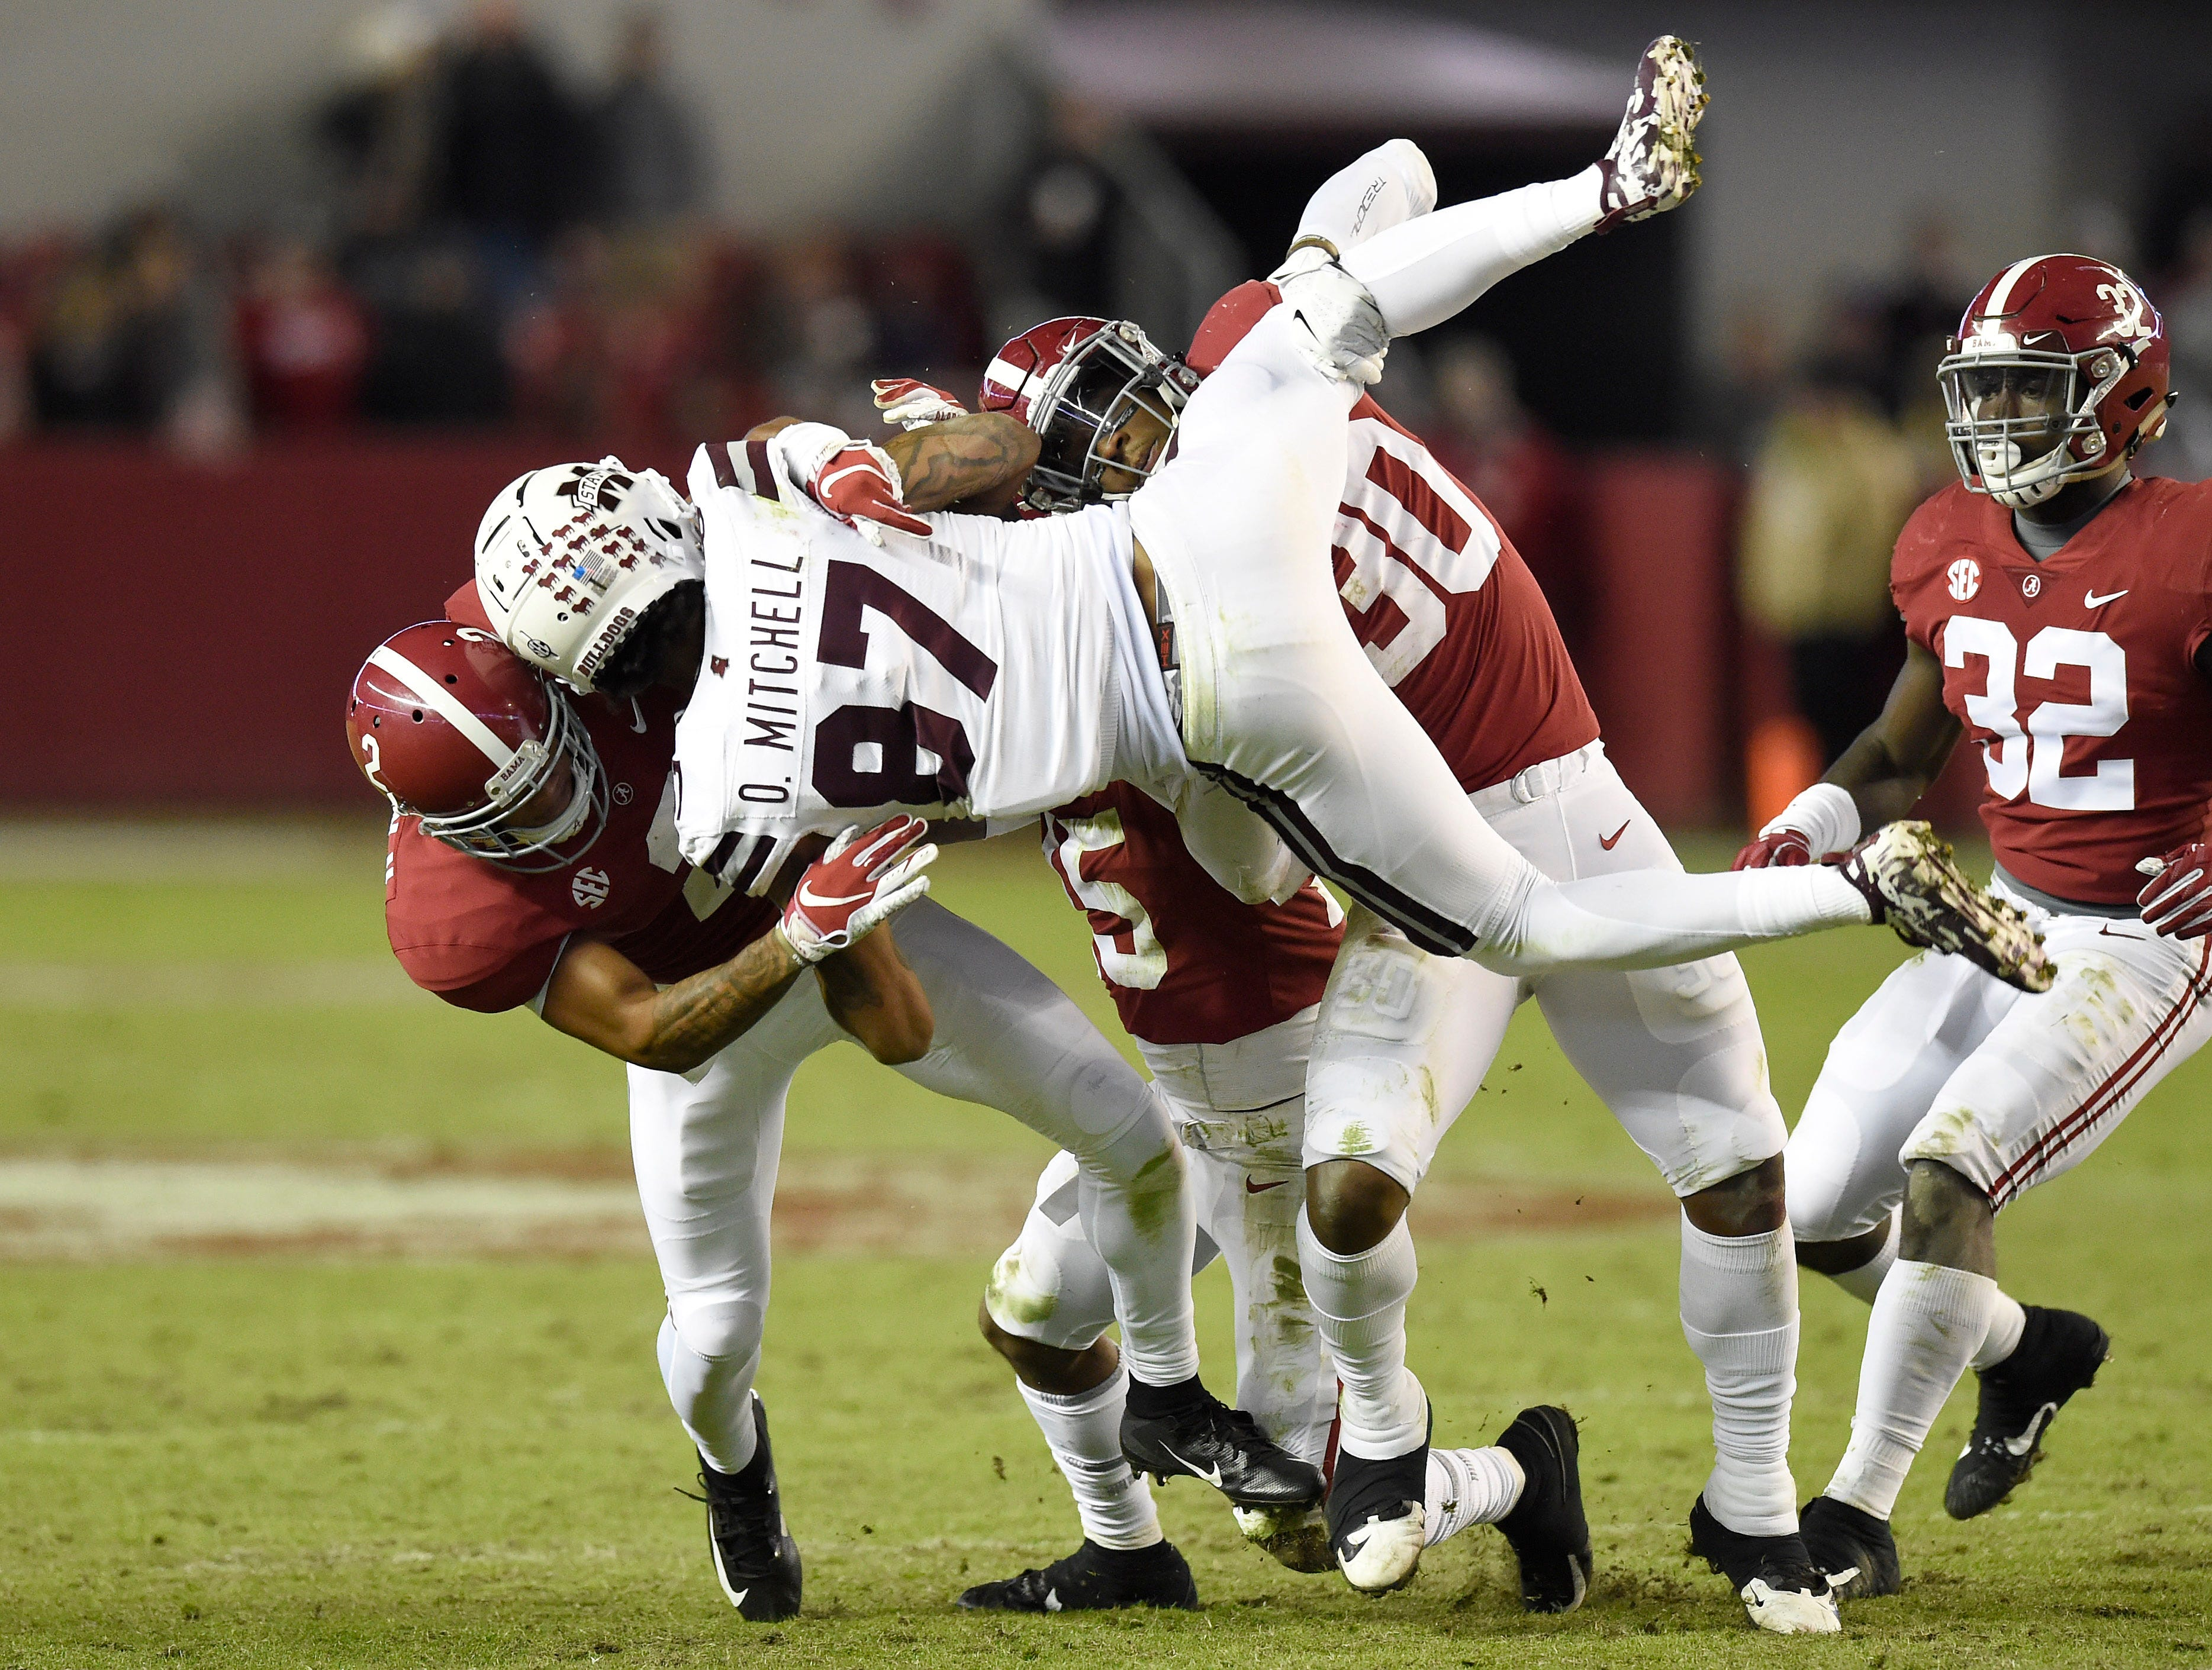 Mississippi State Bulldogs wide receiver Osirus Mitchell (87) gets tackled by Alabama Crimson Tide defensive back Patrick Surtain II (2) and linebacker Mack Wilson (30) during the fourth quarter at Bryant-Denny Stadium.